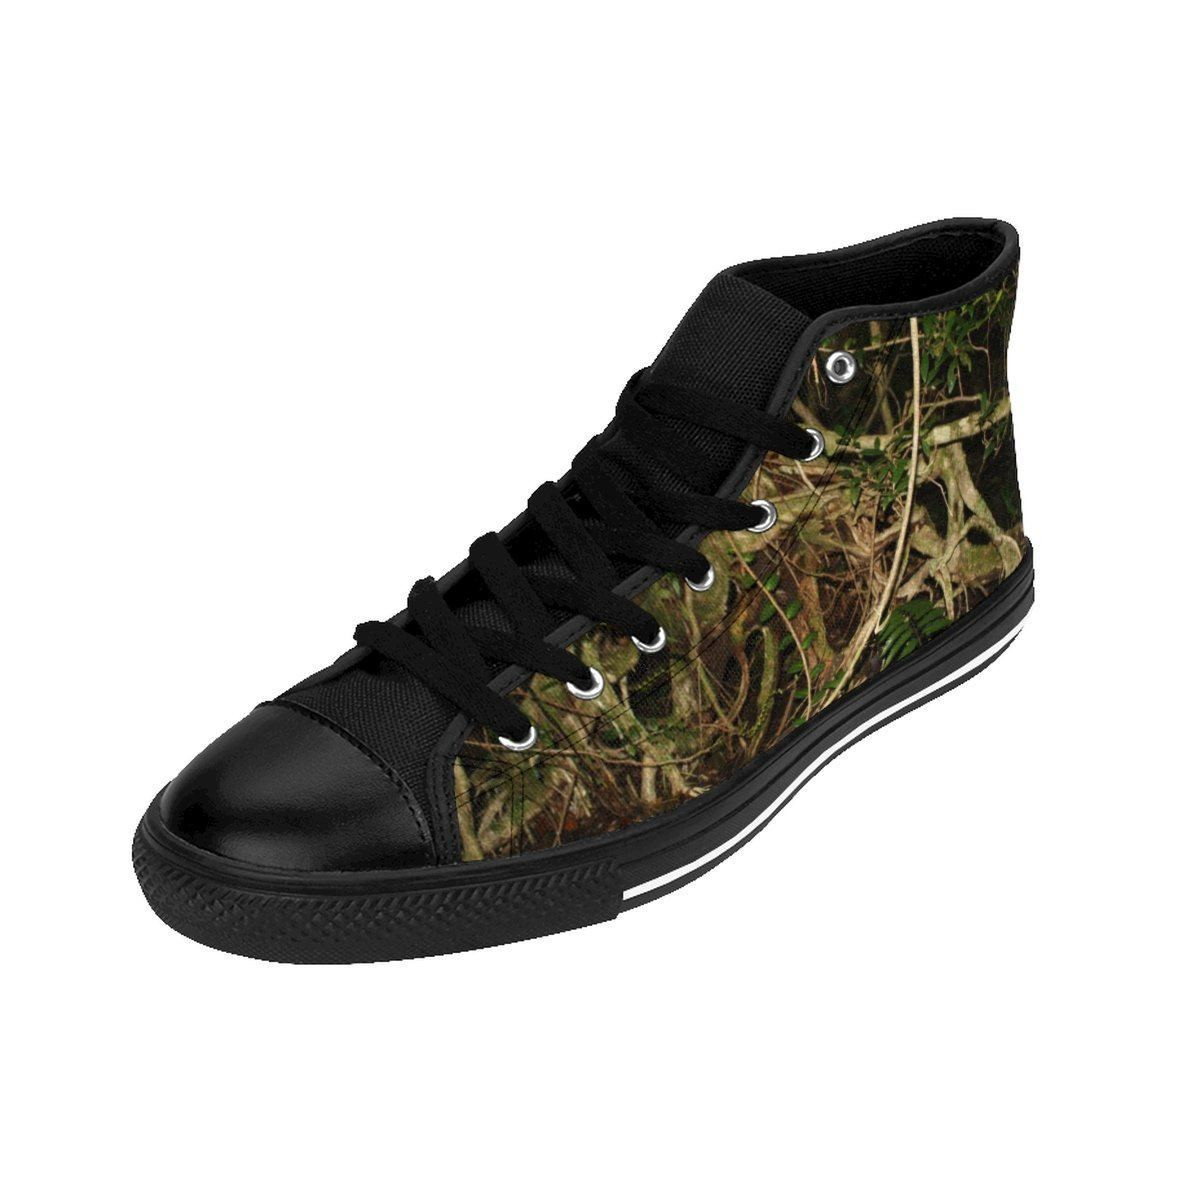 Women's High-top Sneakers - Weird trees of the cloud forest Tradewinds trail - El Yunque rain forest PR Shoes Printify